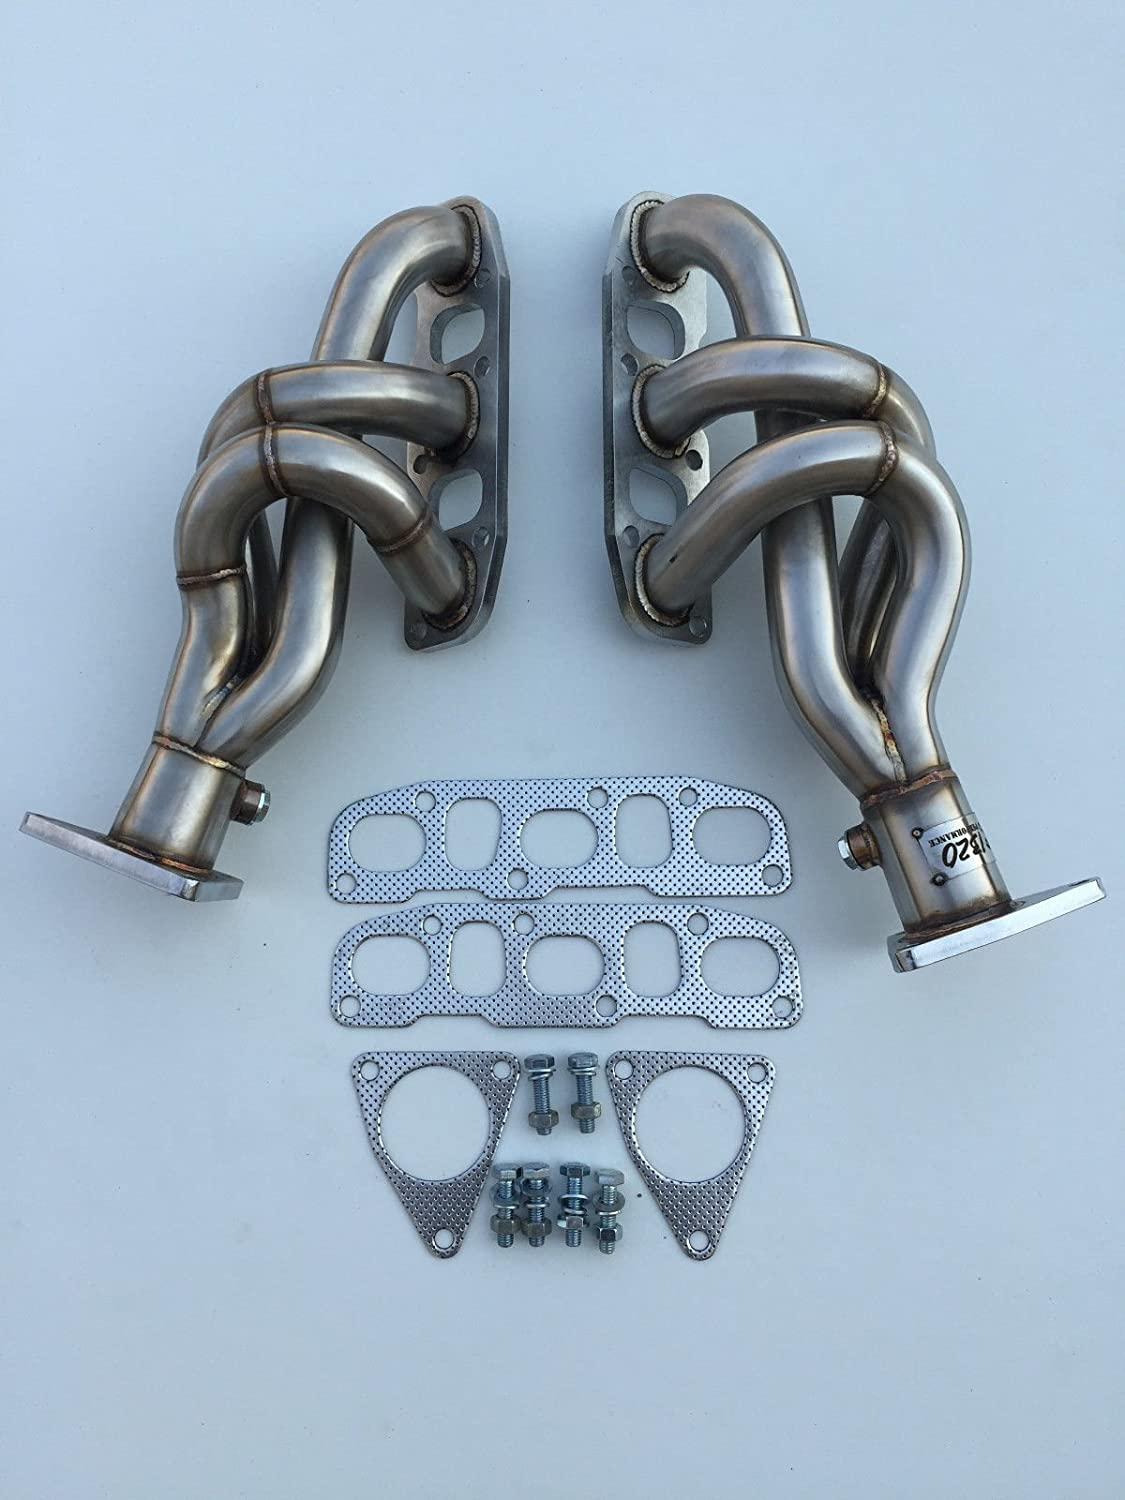 1320 Performance 09-14 370z 07-08 350z 08-13 G37 3 5L 3 7 vq35hr vq37hr  headers